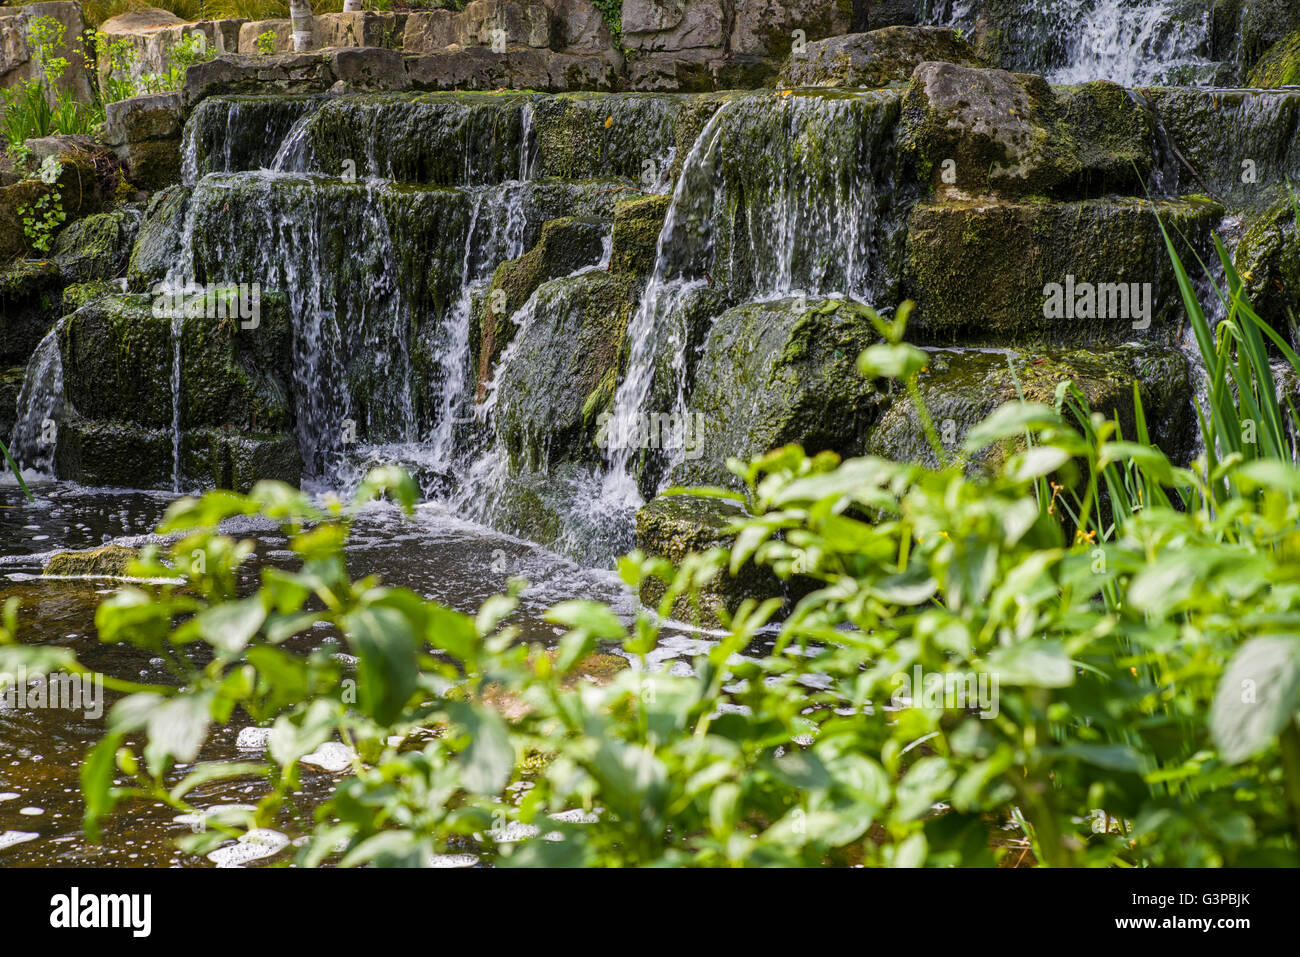 A View Of The Waterfall In The Japanese Garden Island In Regents Park,  London.